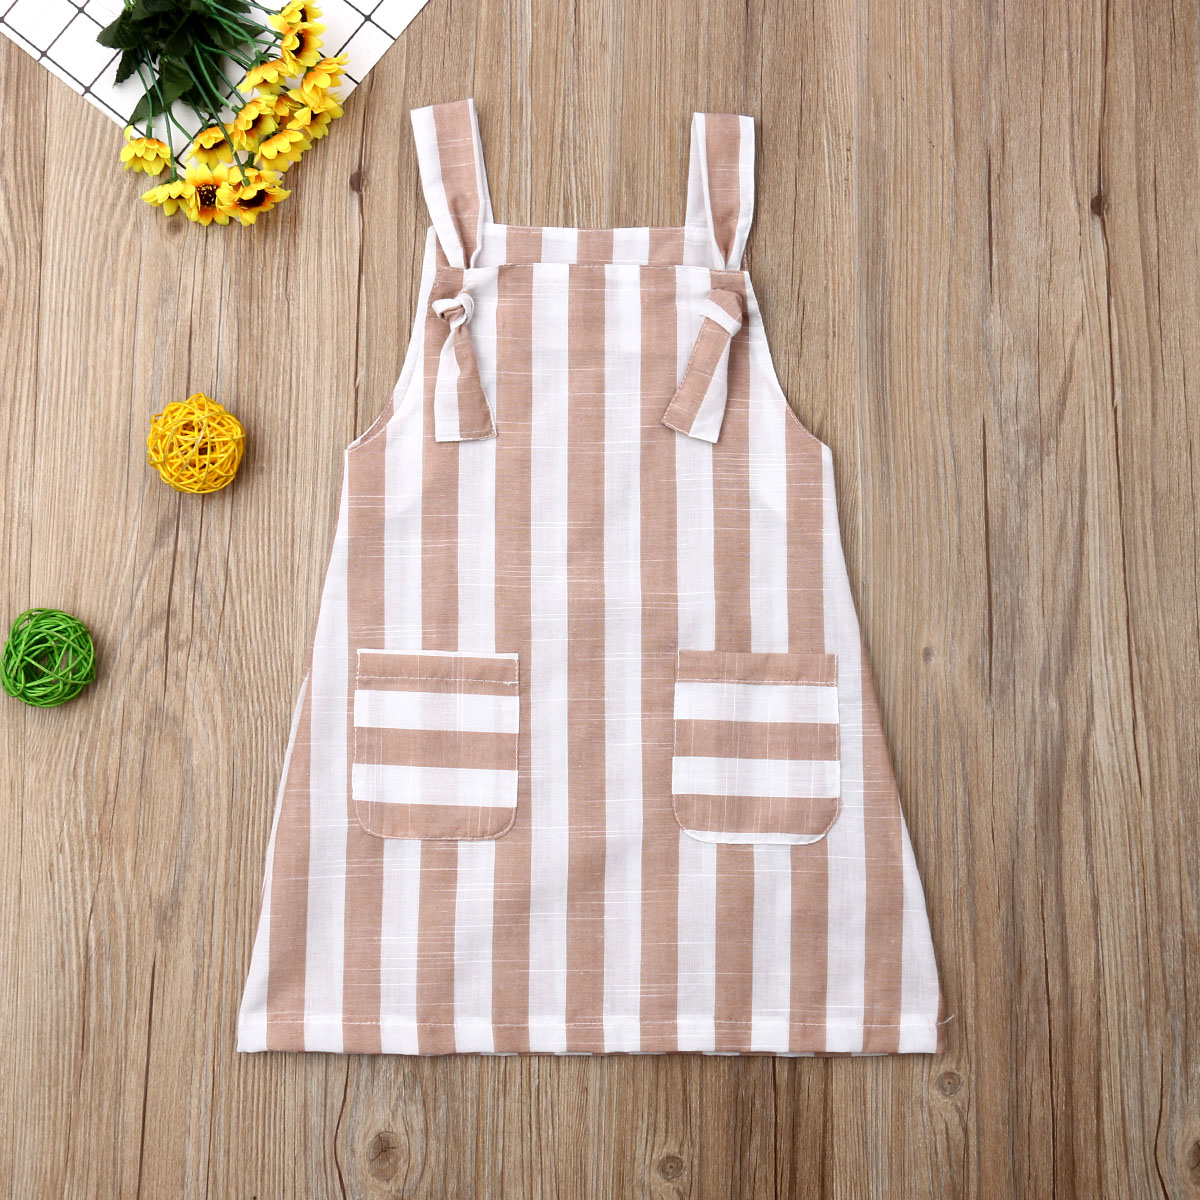 Pudcoco Summer Toddler Baby Girl Clothes Sleeveless Striped Strap Dress Casual Pockets Summer Sundress